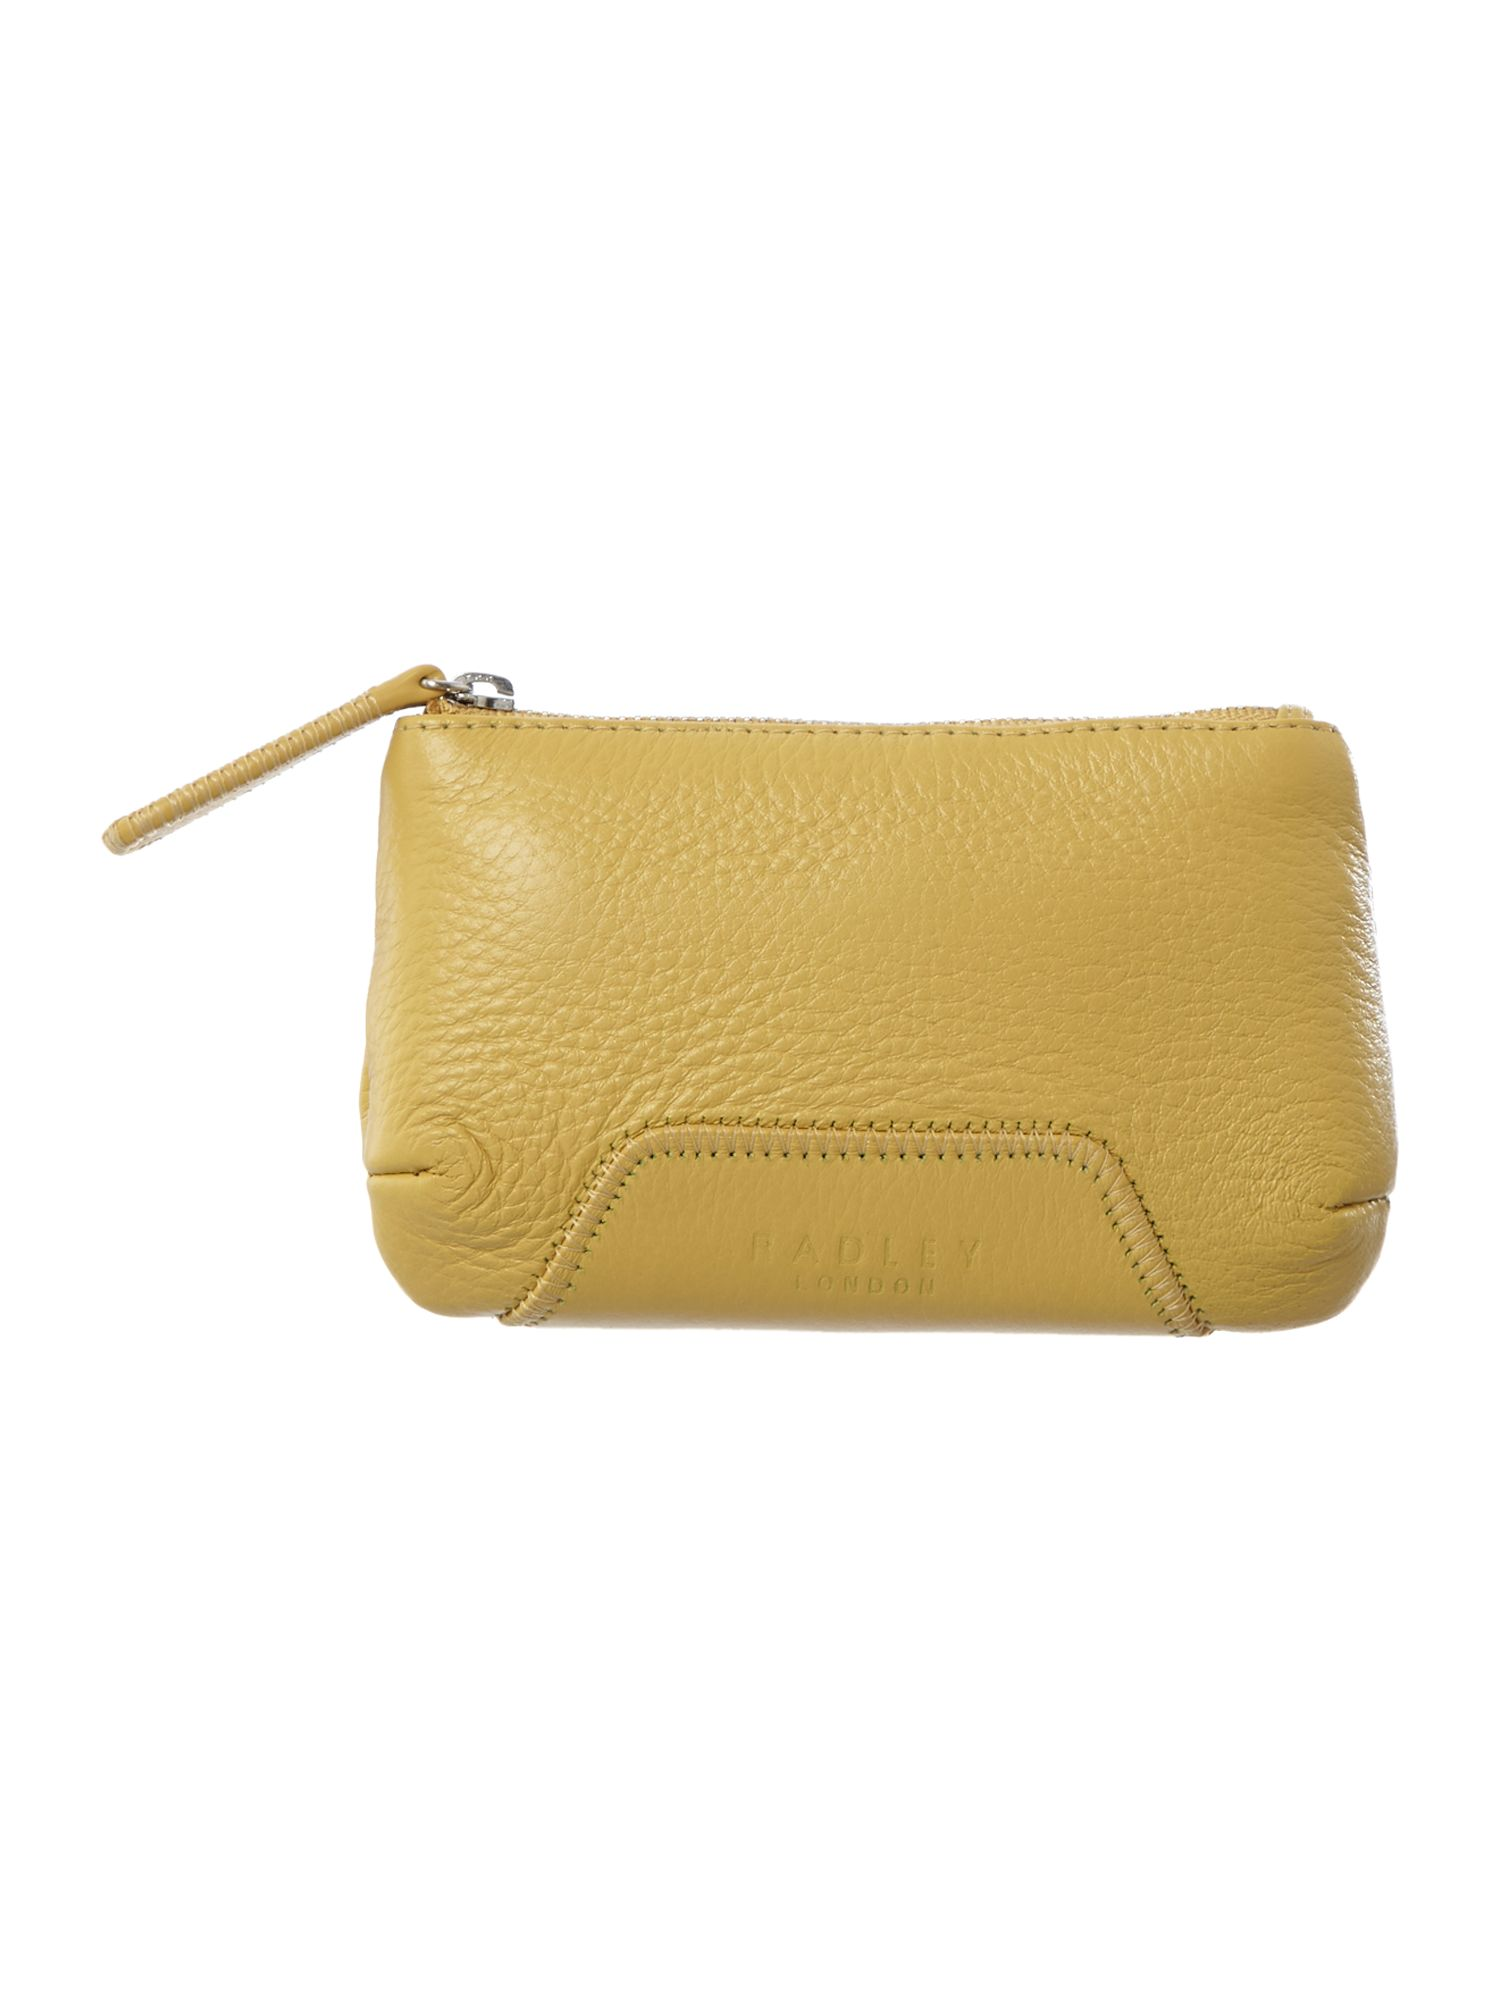 Dayton yellow medium zip pouch purse